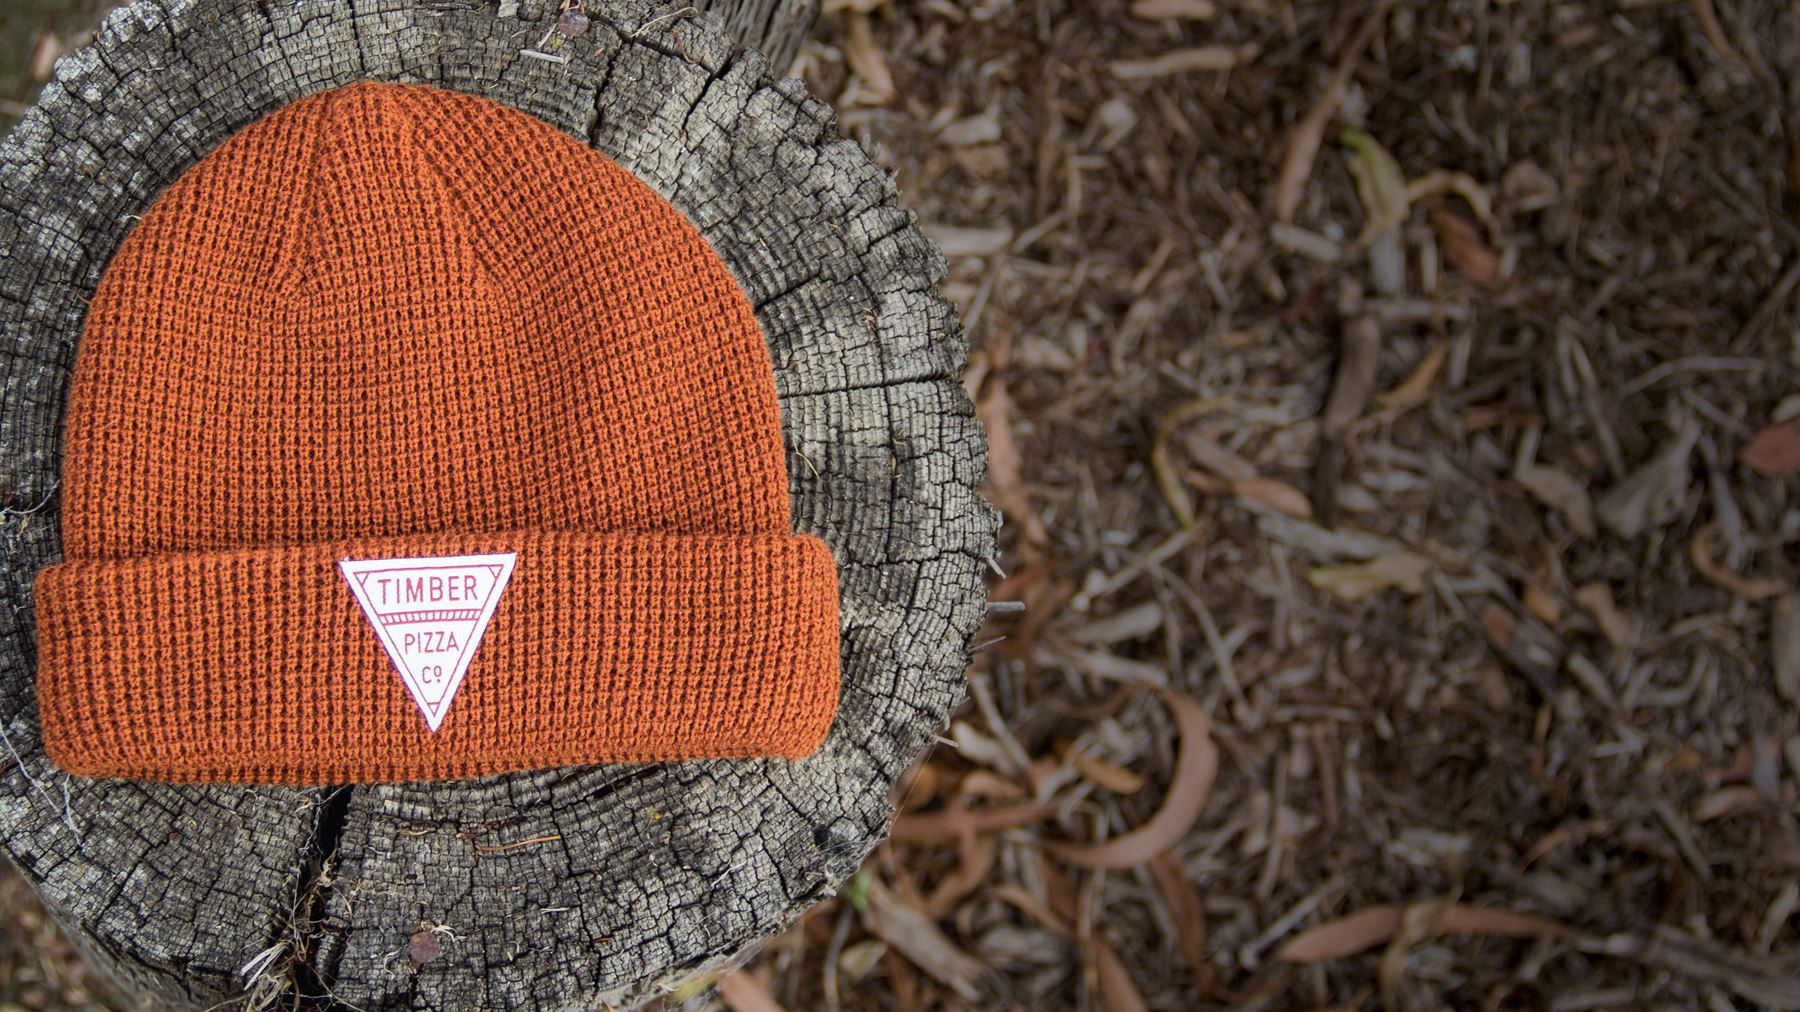 Wheelhouse / Waffle Knit hat laying on tree stump